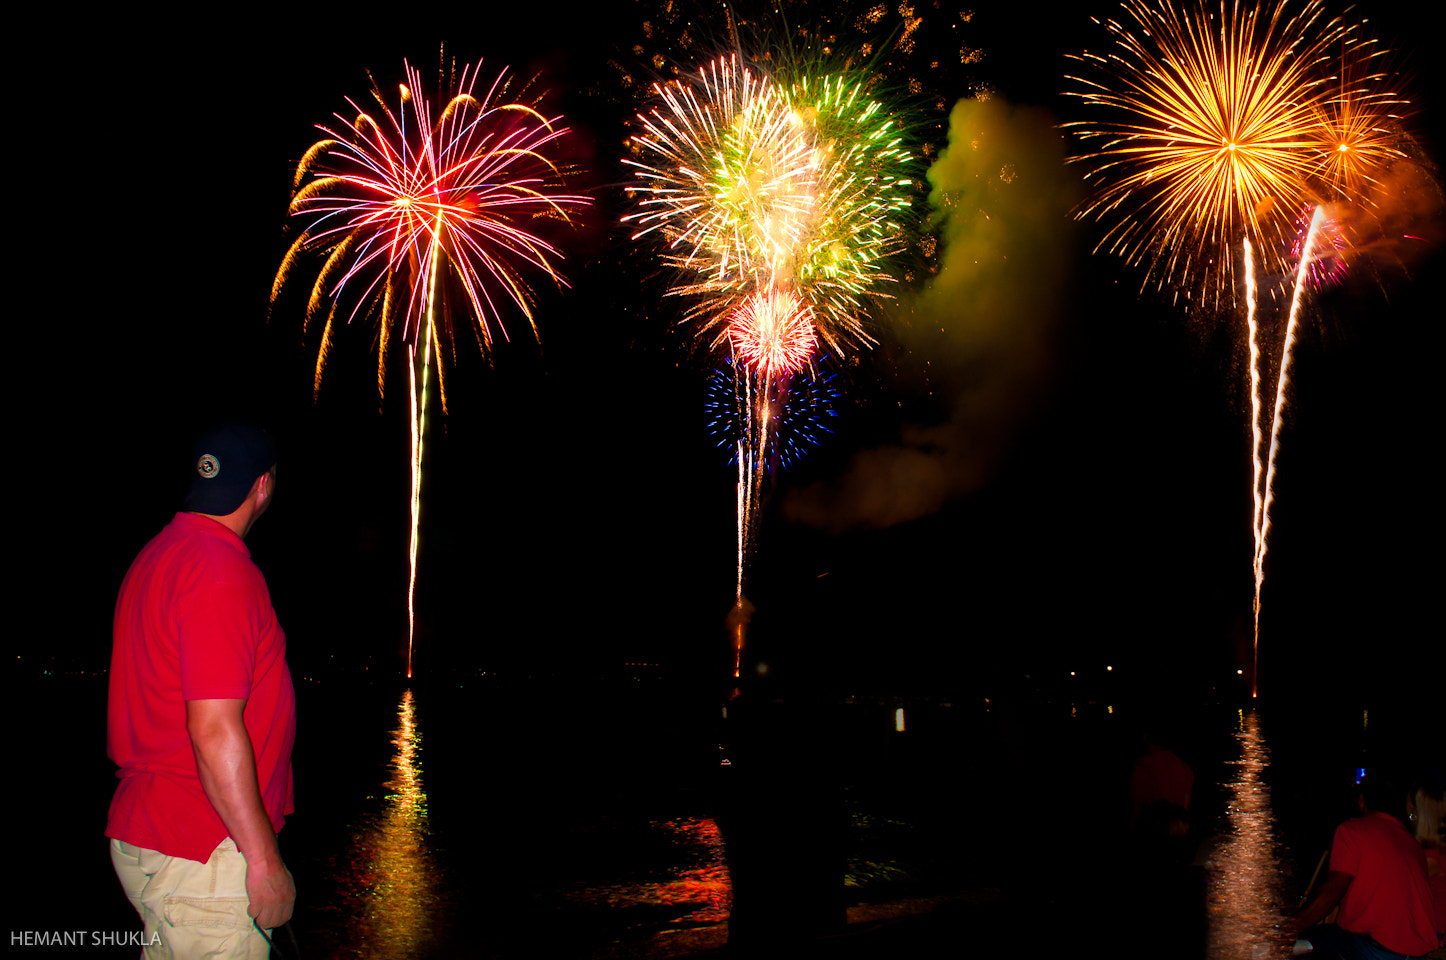 Photograph Fireworks At Fairhope Alabama by Hemant Shukla on 500px